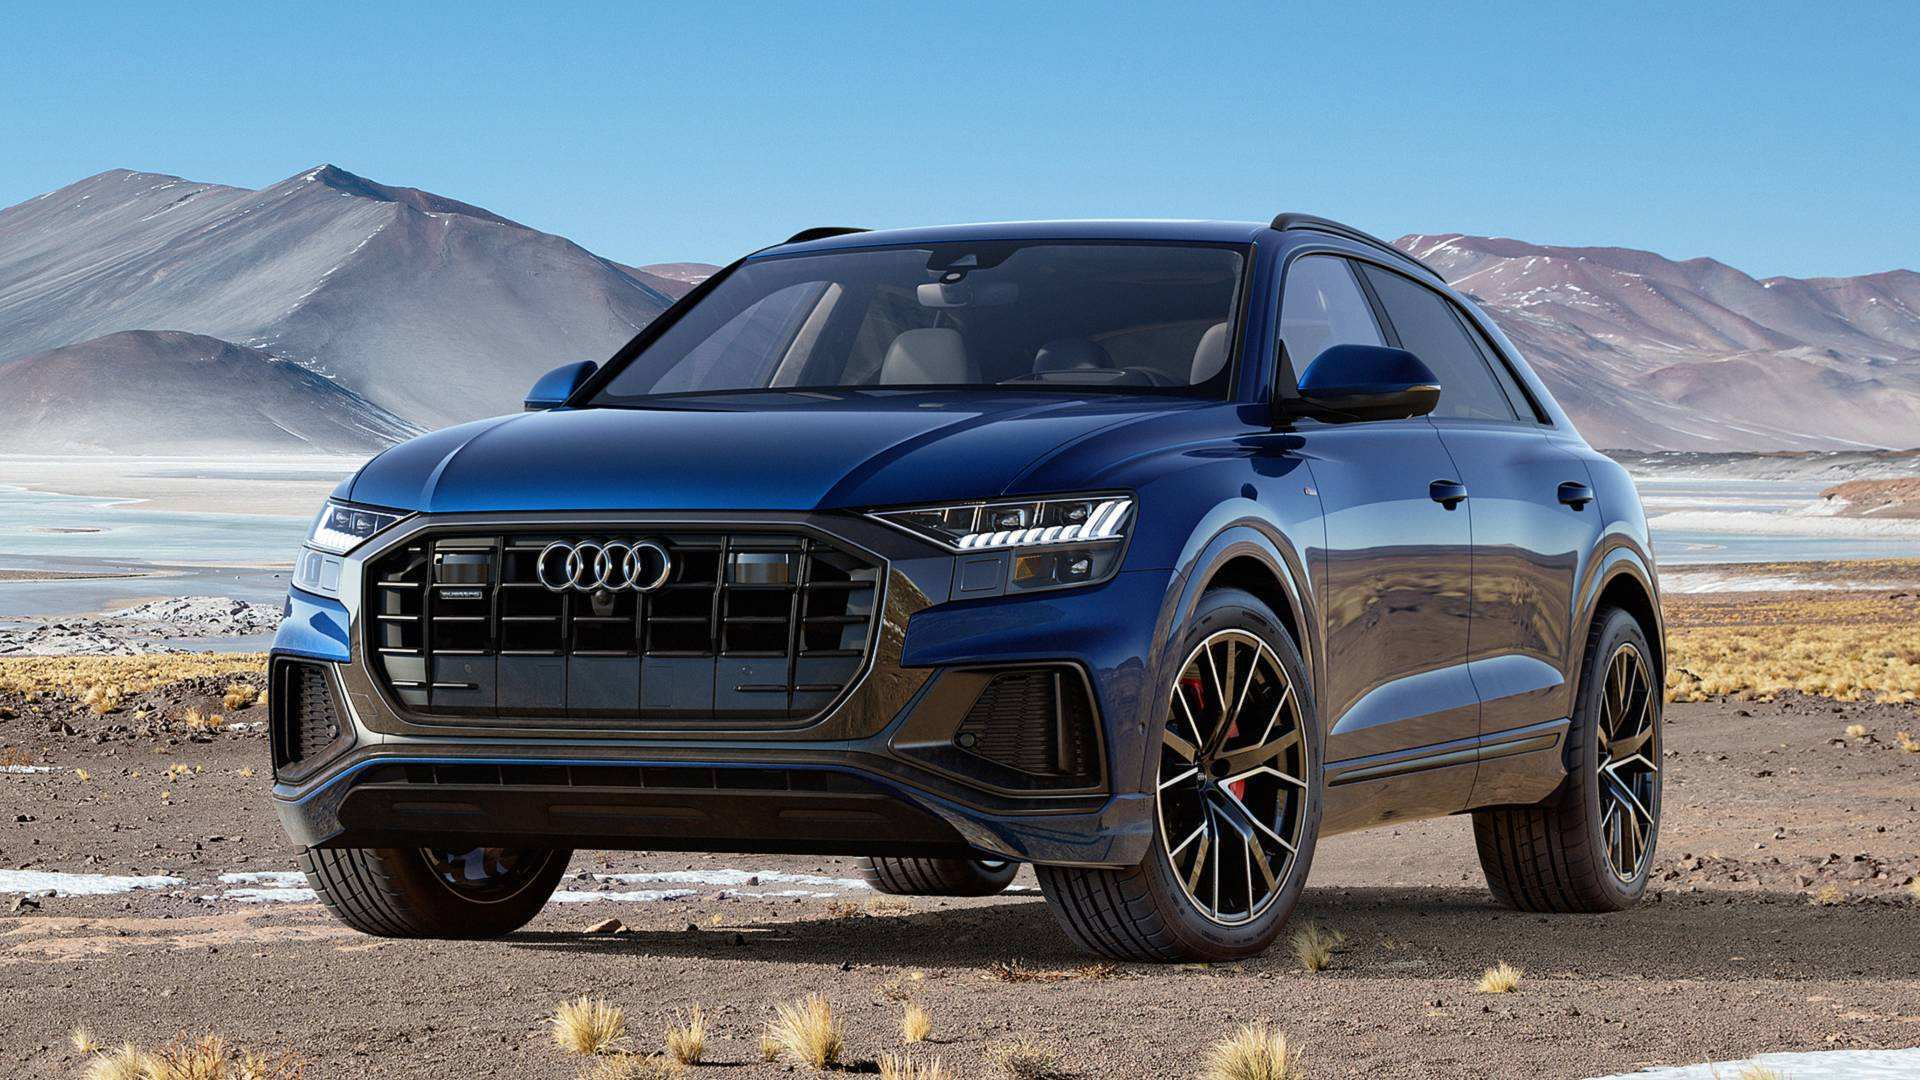 66 Best Review 2019 Audi Hybrid Pictures with 2019 Audi Hybrid